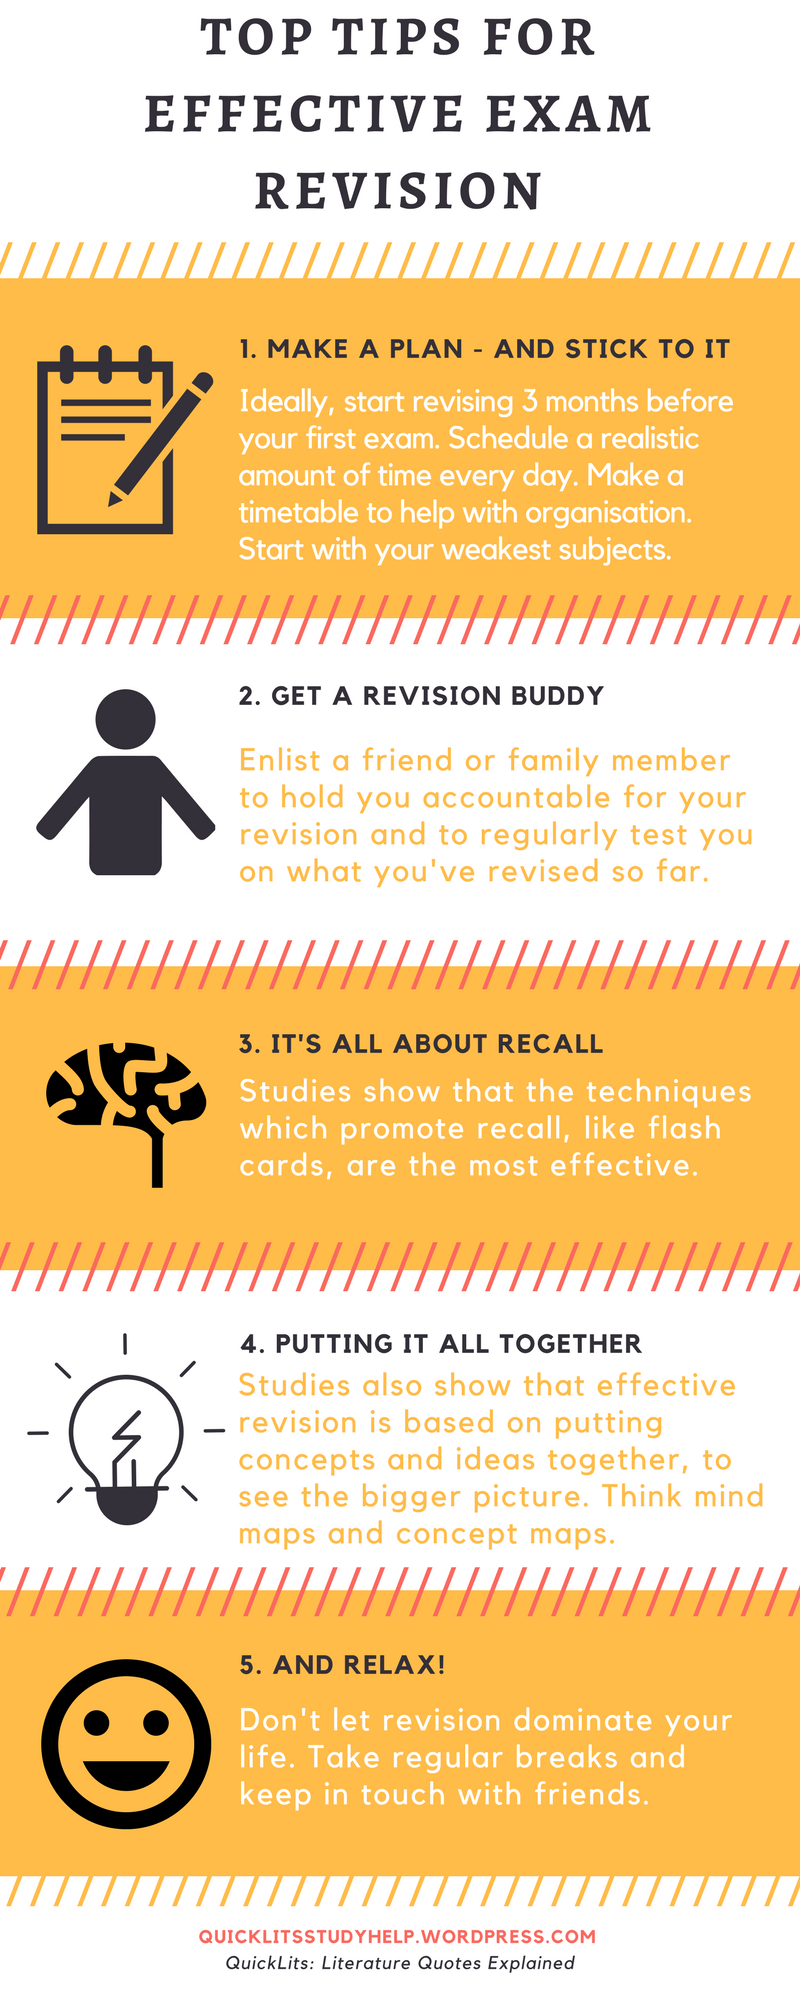 Top tips for effective exam revision